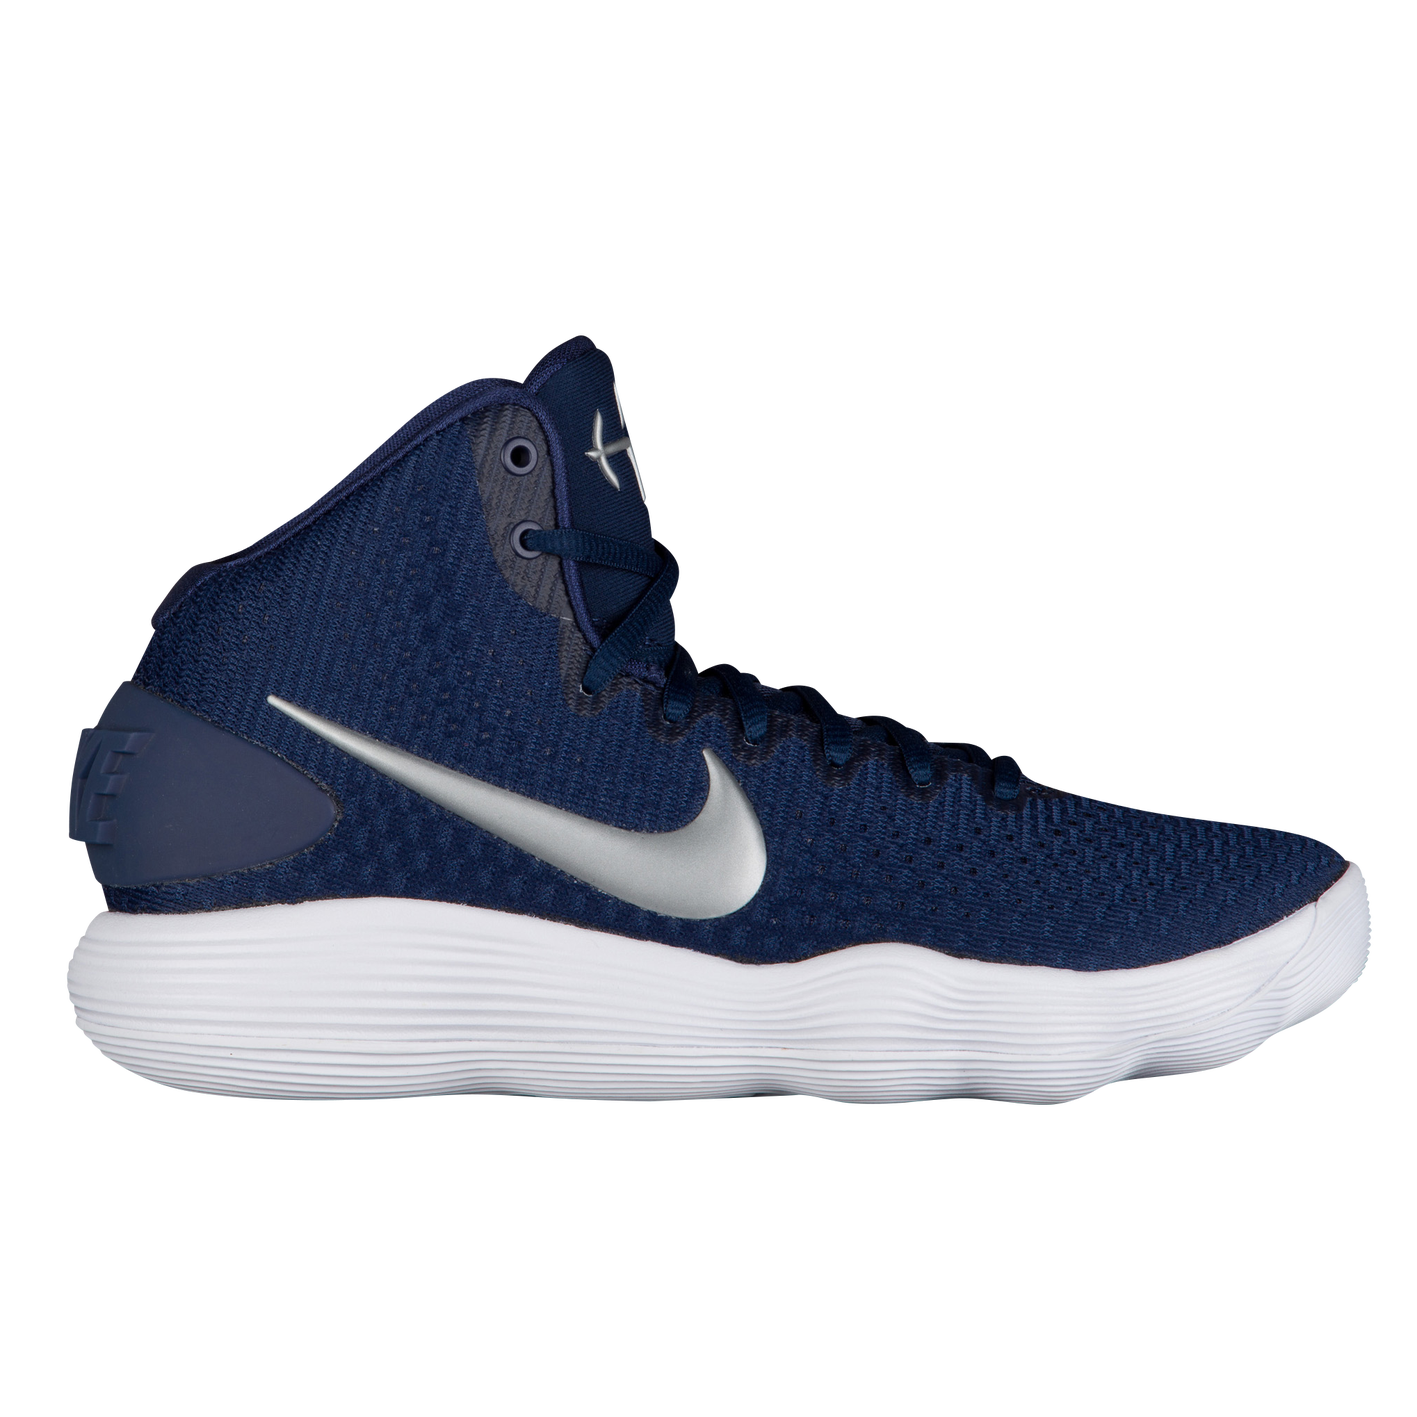 5b08253c33c8 Nike React Hyperdunk 2017 Mid - Men s - Basketball - Shoes ...